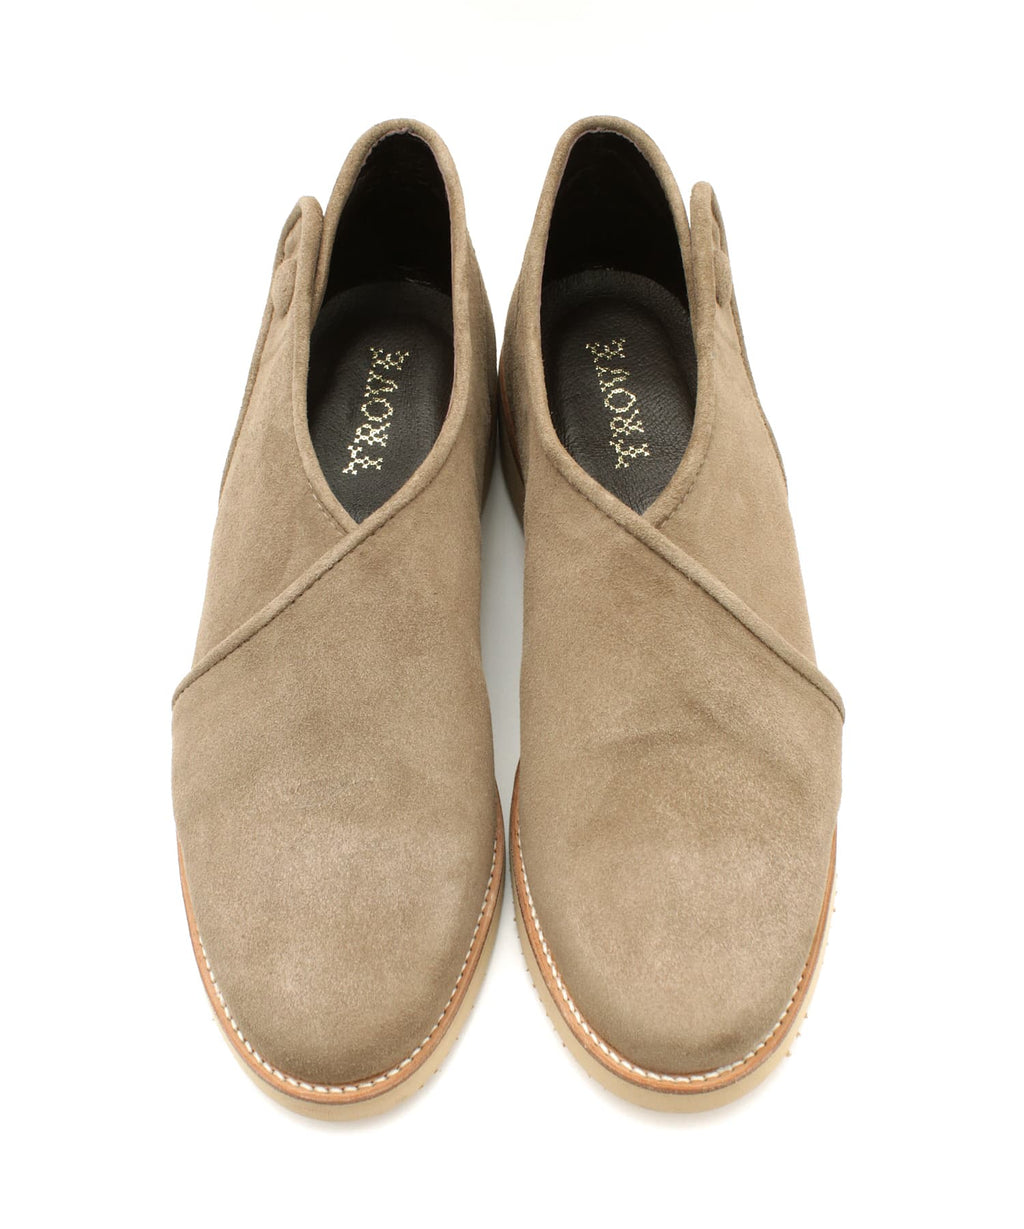 TROVE / POROMIES SHOES ( SHOP LIMITED ) / GRAY BEIGE